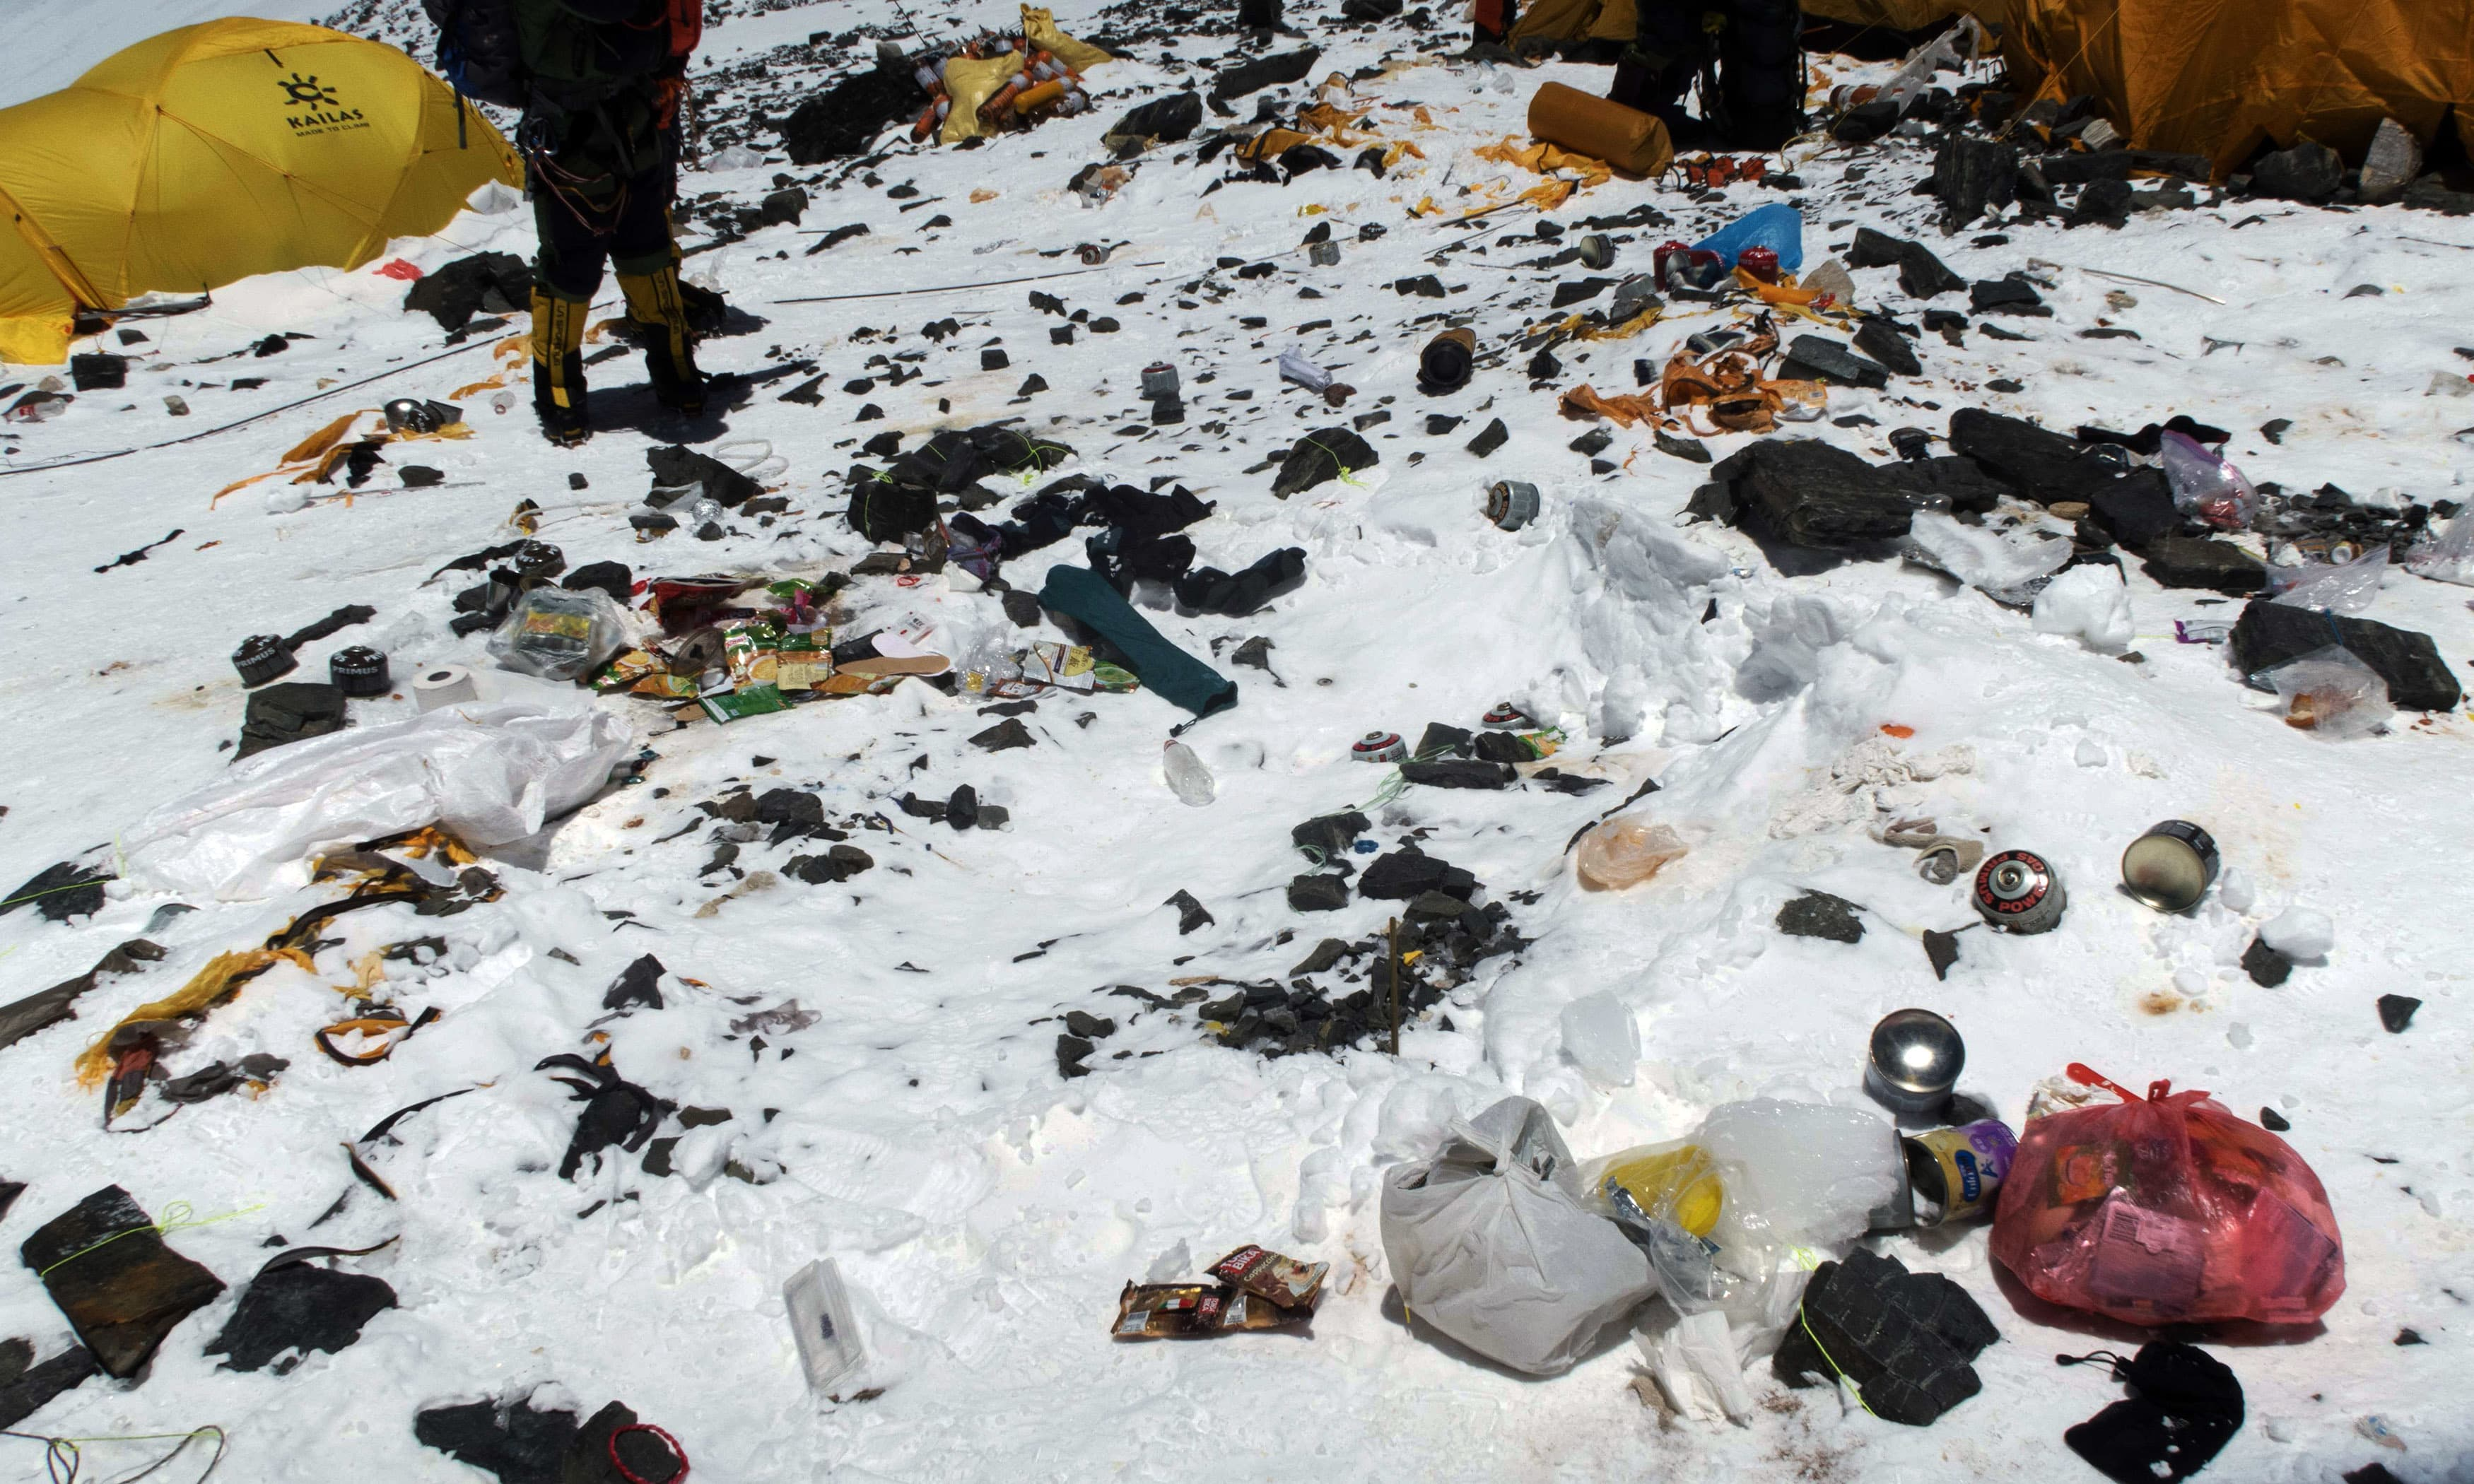 In 2017 climbers in Nepal brought down nearly 25 tonnes of trash and 15 tonnes of human waste. —AFP